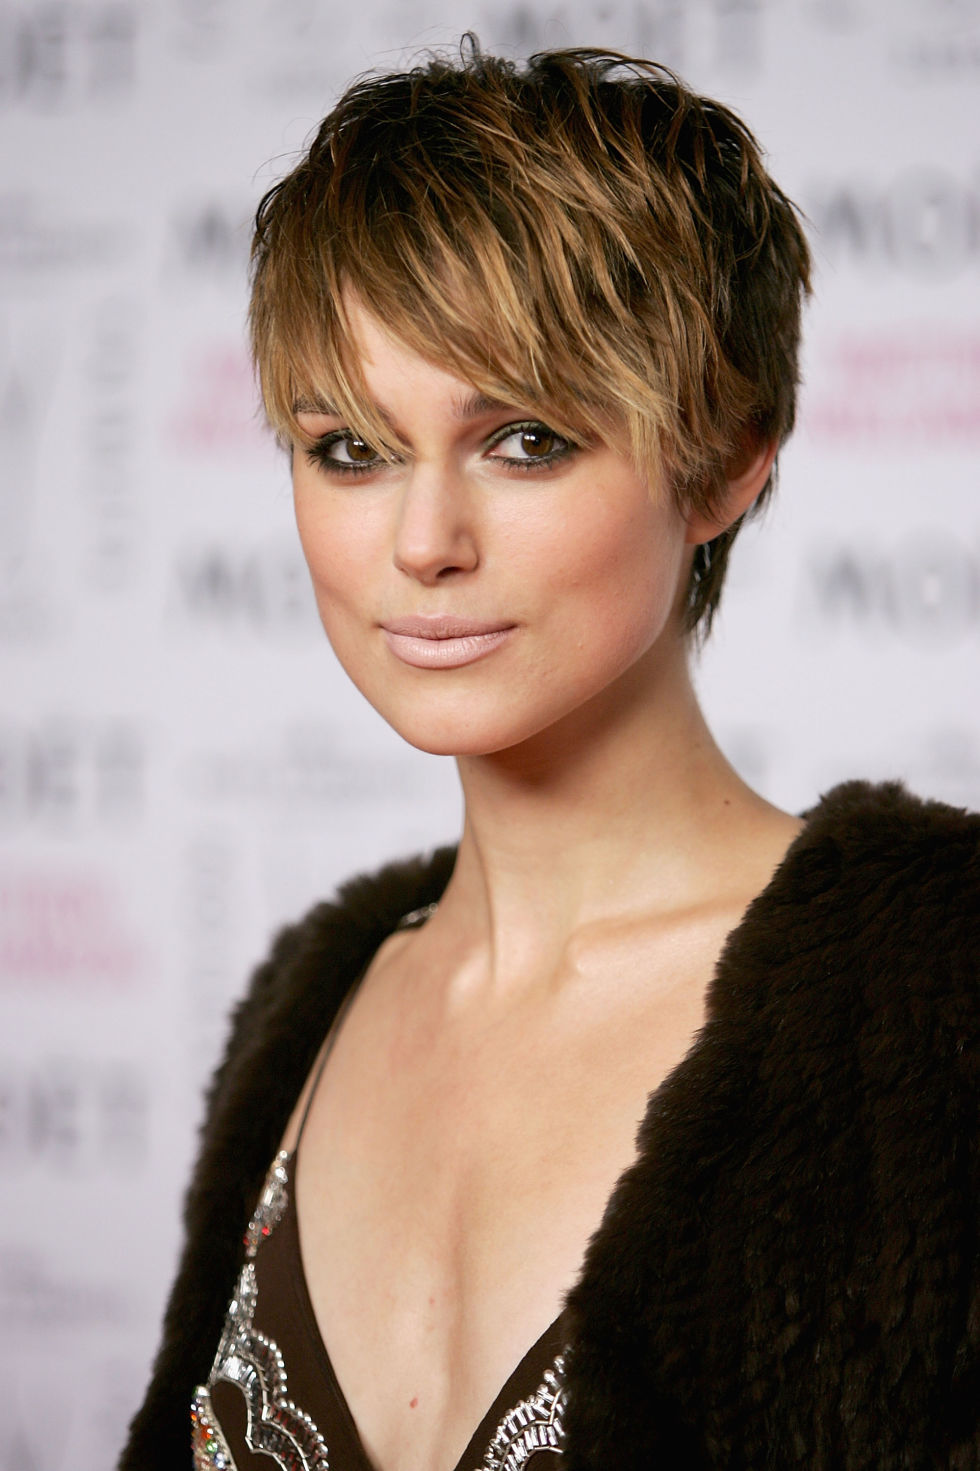 Magnificent 35 Best Pixie Cuts On Celebrities Chic Pixie Hairstyle Ideas For Short Hairstyles Gunalazisus